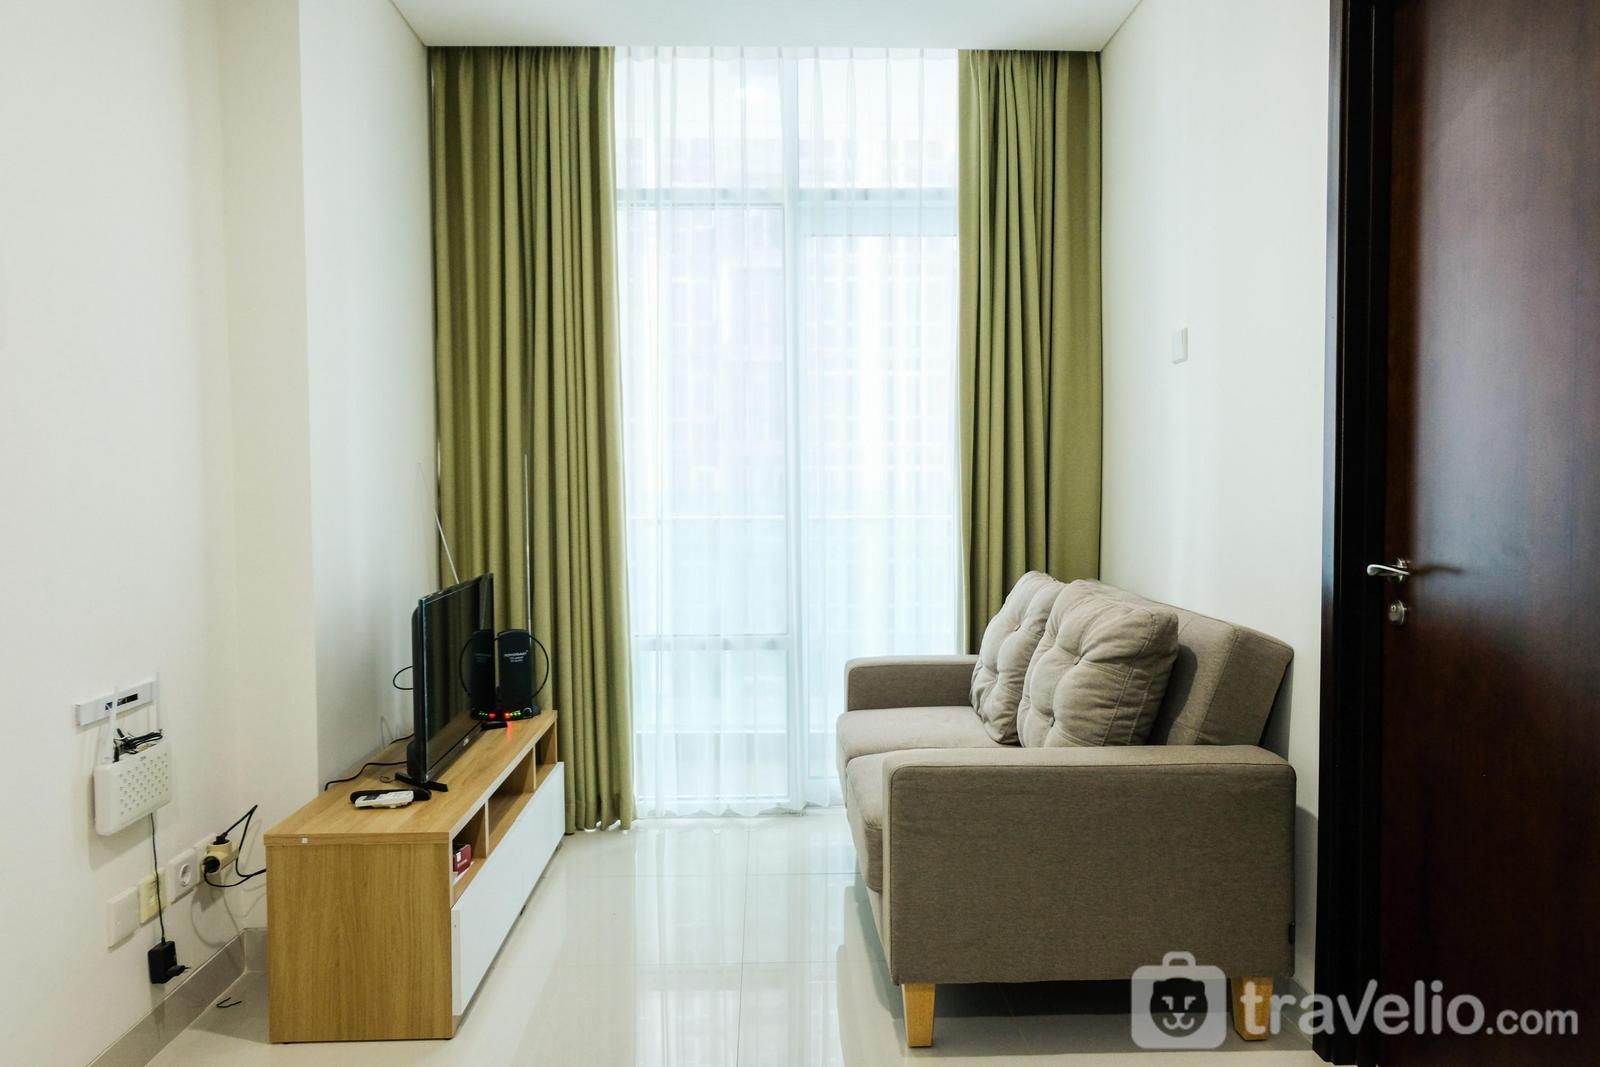 Brooklyn Alam Sutera - Simply and Relax 1BR @ Brooklyn Apartment By Travelio